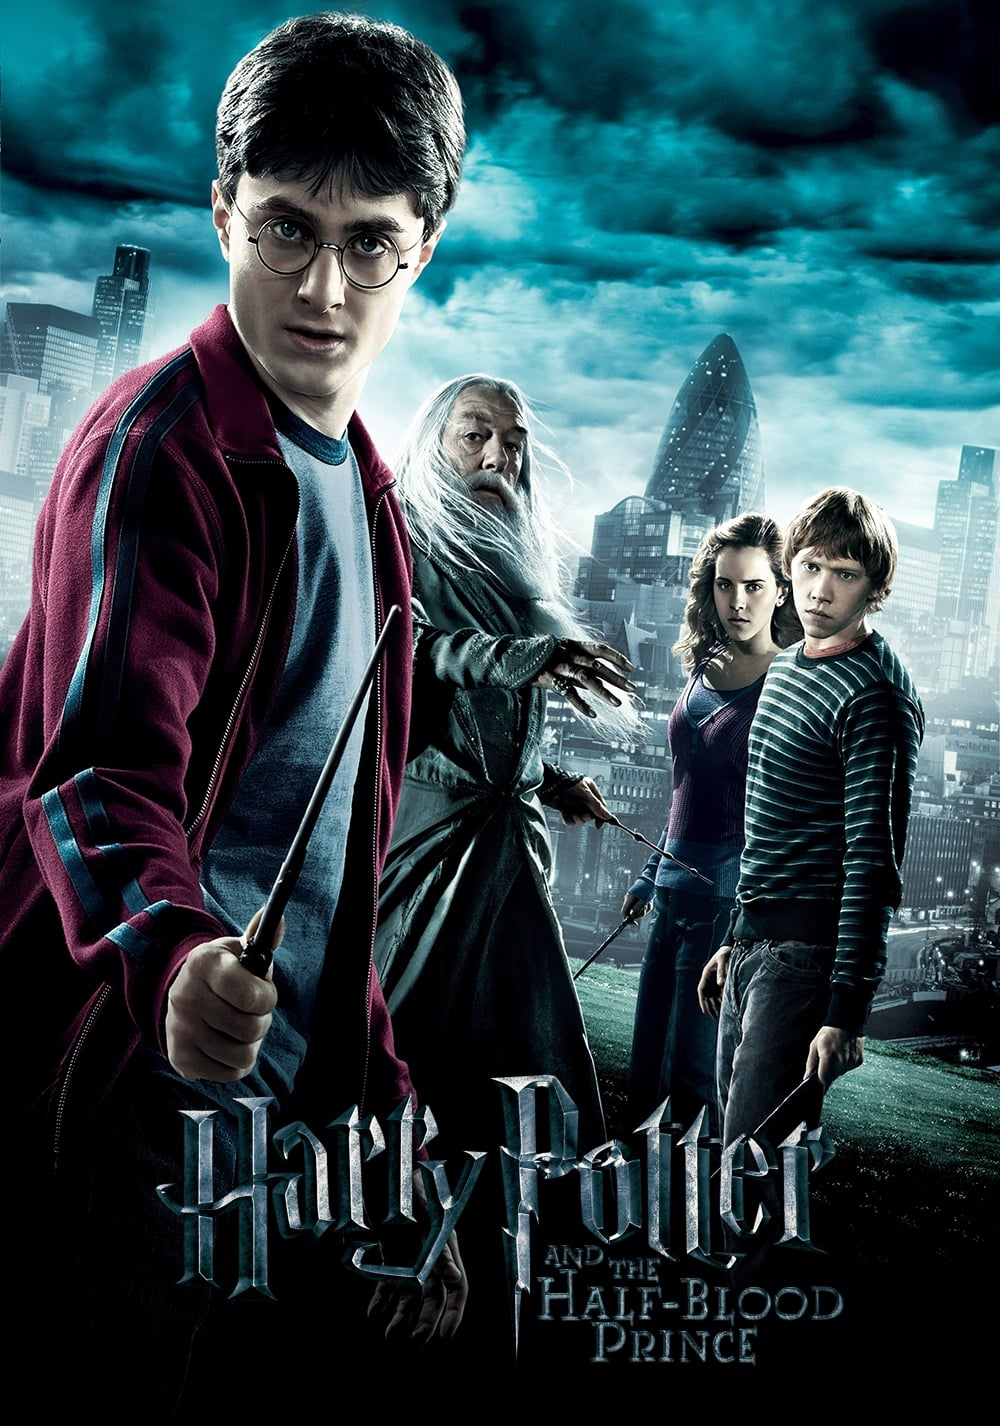 the reasons why the harry porter series would interest 4th and 5th graders